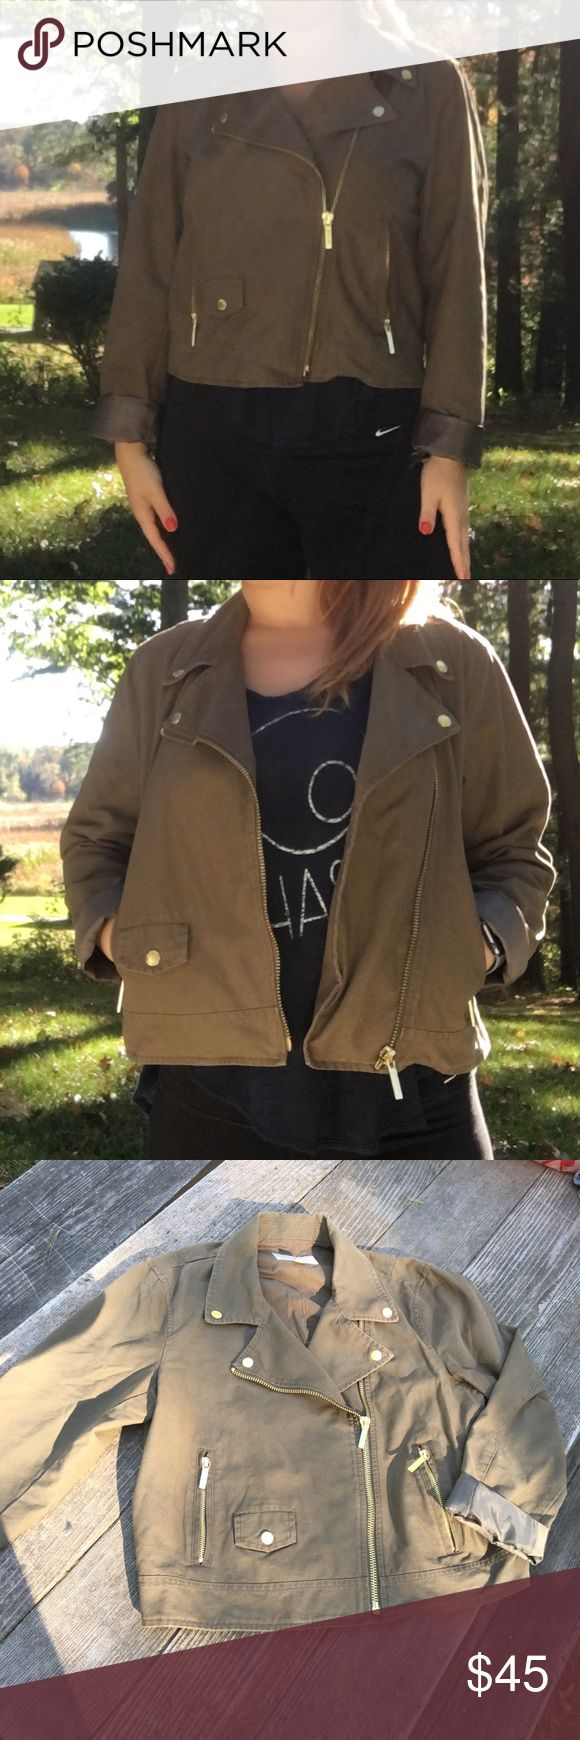 Michael Kors moto jacket militar green size L Beautiful and barely used Michael Kors moto jacket in green militar, super style and fashion. Good condition and you will be looking amazing on that. Perfect for the fall. KORS Michael Kors Jackets & Coats